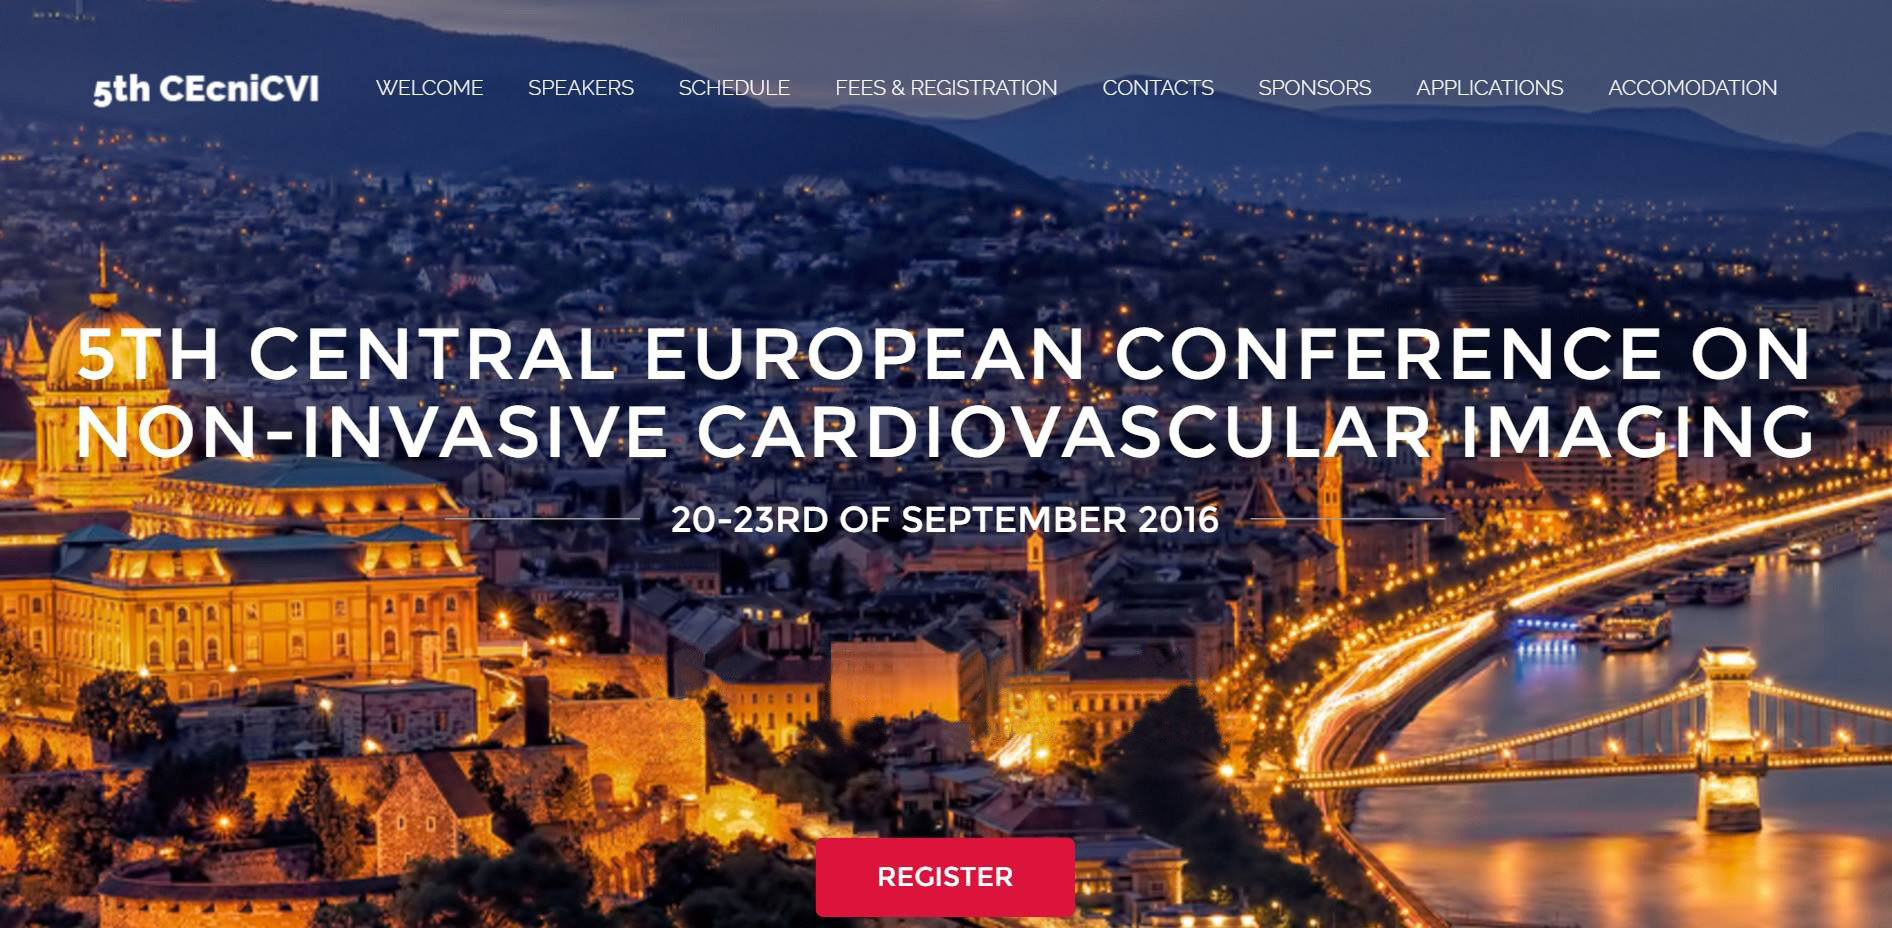 5TH CENTRAL EUROPEAN CONFERENCE ON NON-INVASIVE CARDIOVASCULAR IMAGING